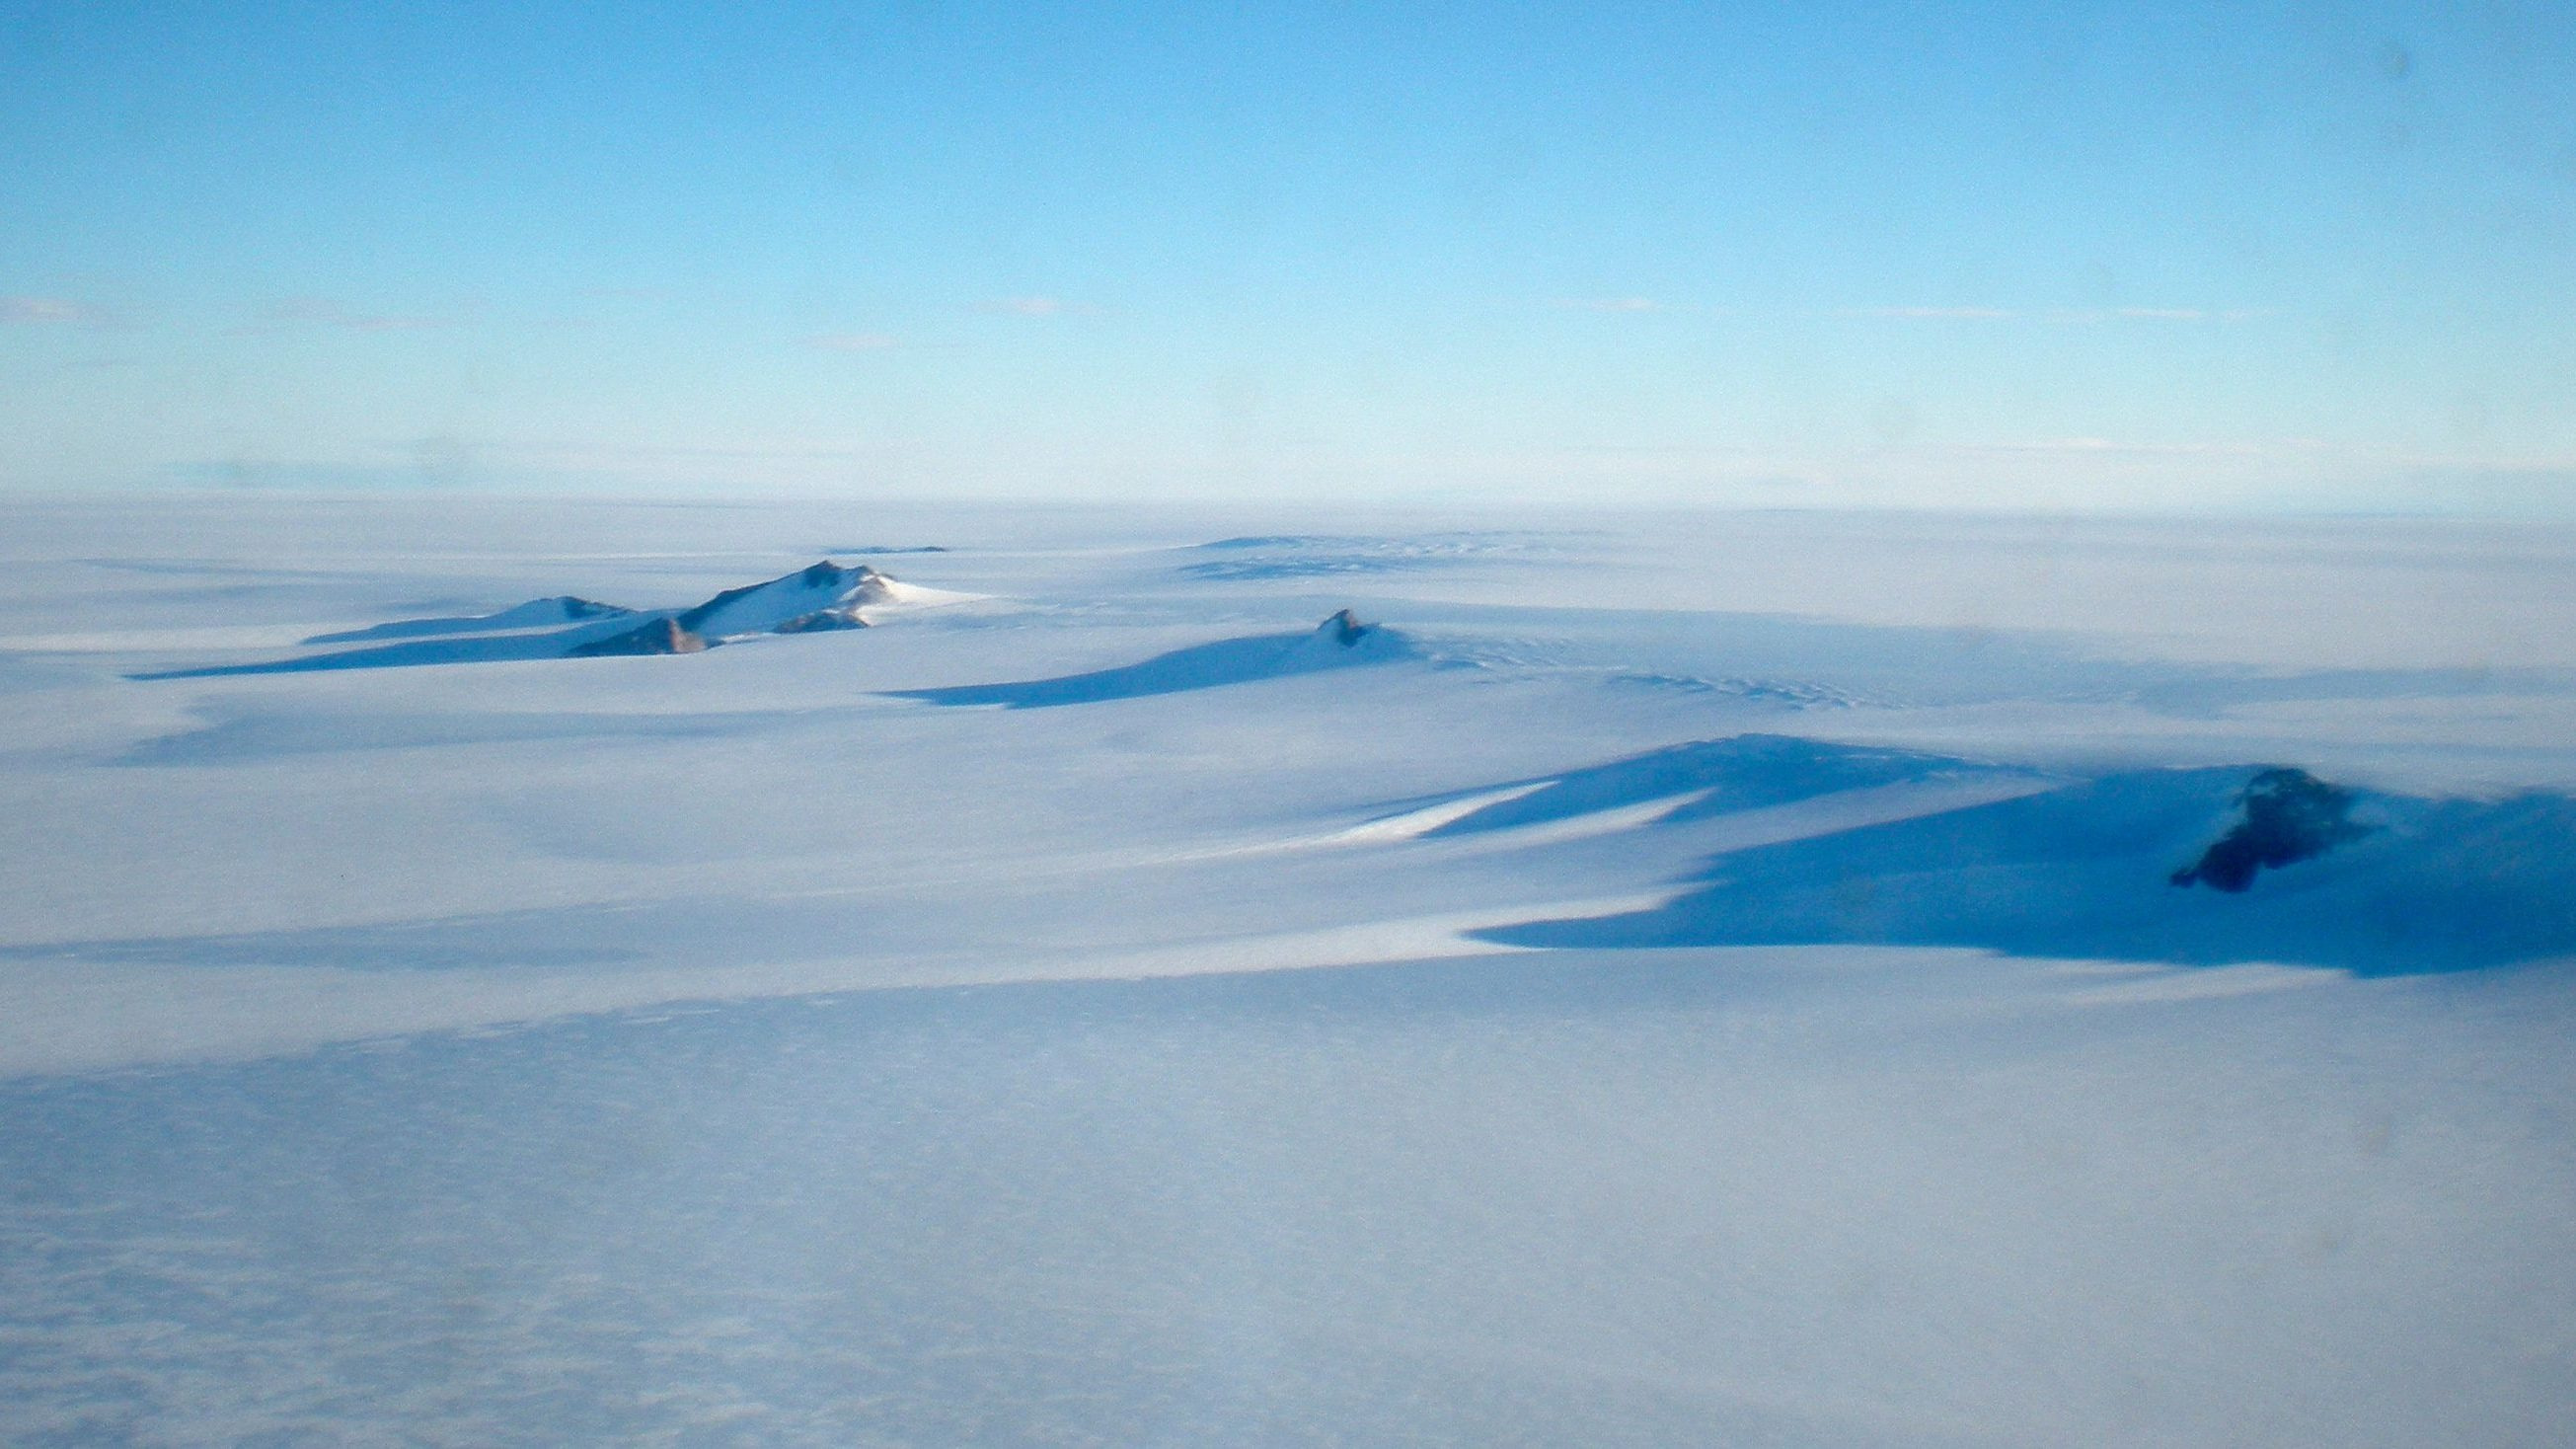 ** TO GO WITH ANTARTIDA EXPEDICION ** The Antarctic landscape is seen near the Troll Research Station, Antarctica, in February 2009. The Norwegian-American Scientific Traverse of East Antarctica was one of the longest research treks ever undertaken in one of the least-explored parts of the southernmost continent.